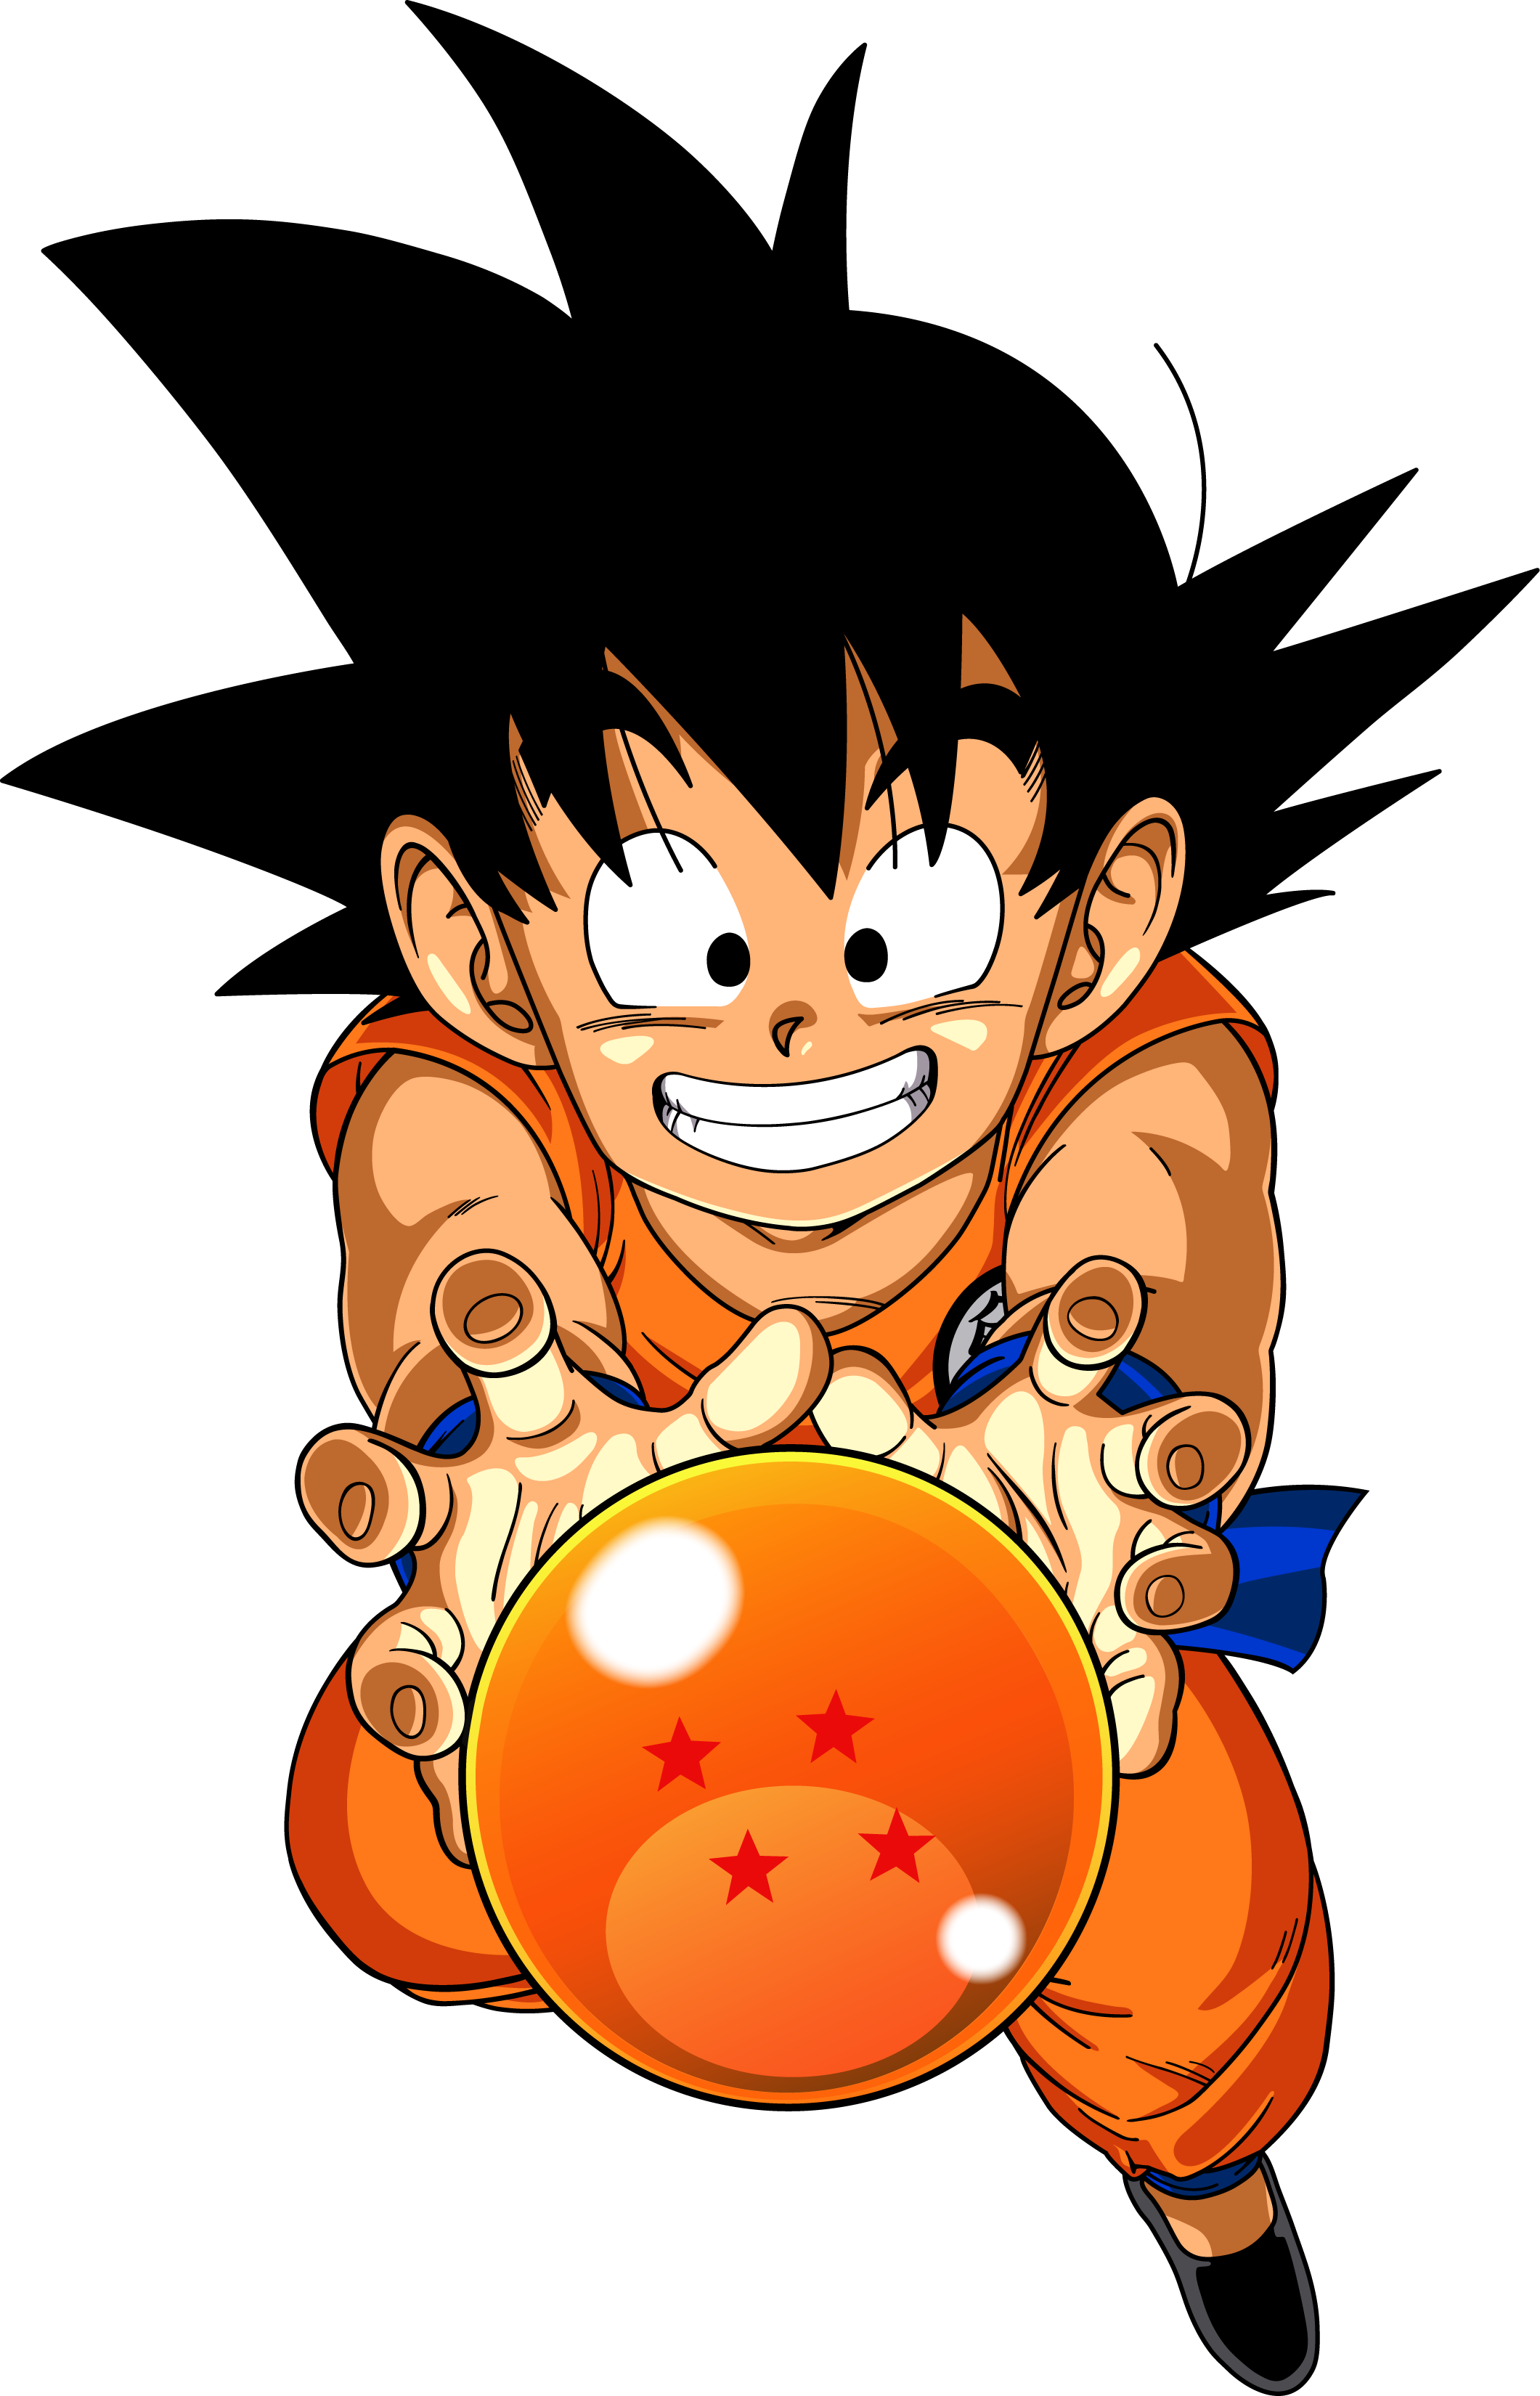 dragonball | dragon_ball___kid_goku_6_by_superjmanplay2-d47h2iv.png - Dbz PNG